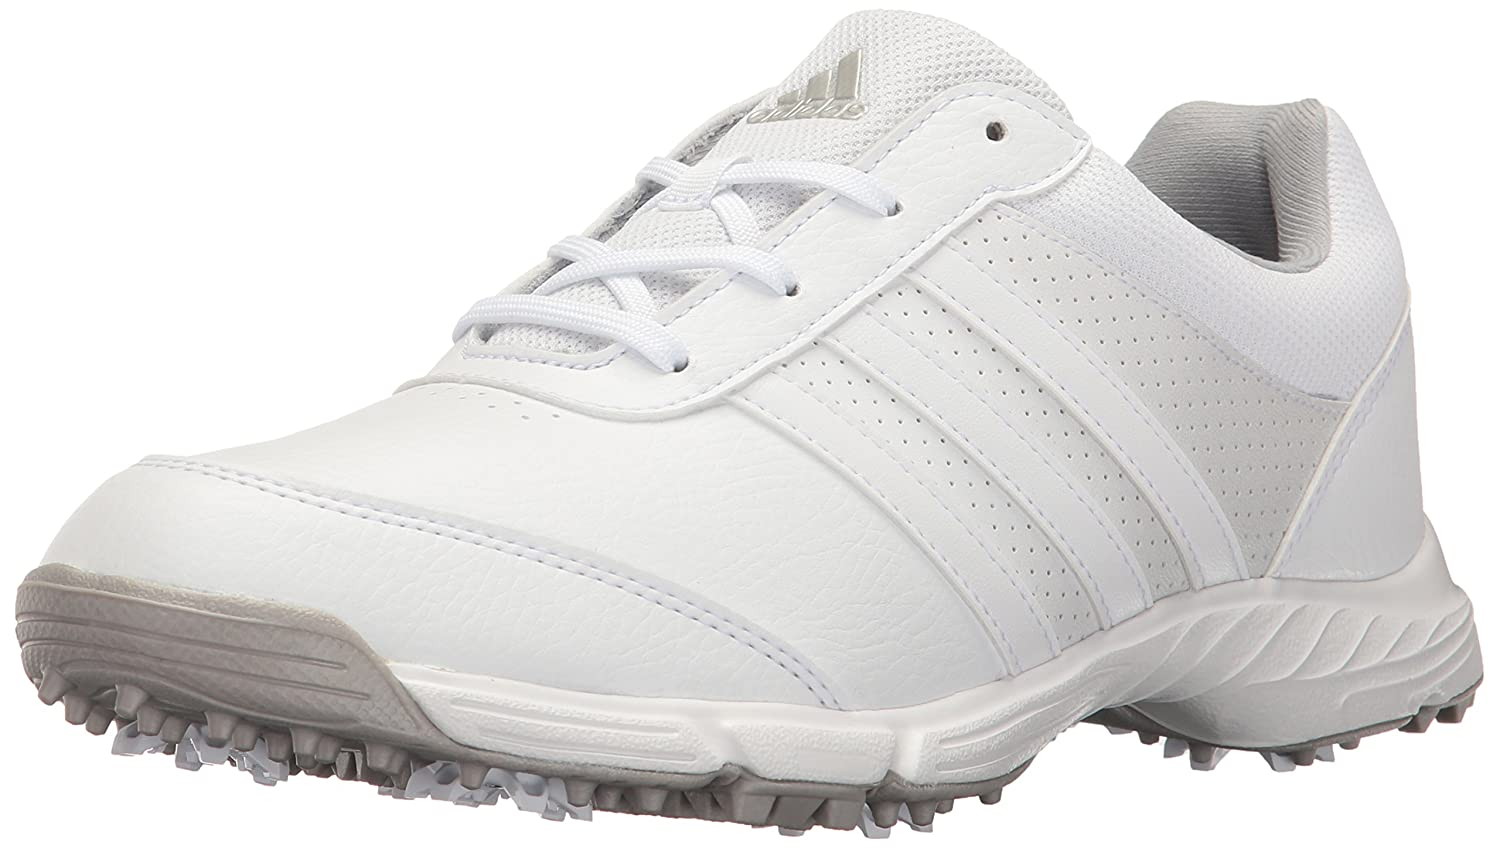 adidas Women's W Tech Response Ftwwht/Ft Golf Shoe B01IWCUC2S 5 B(M) US|White